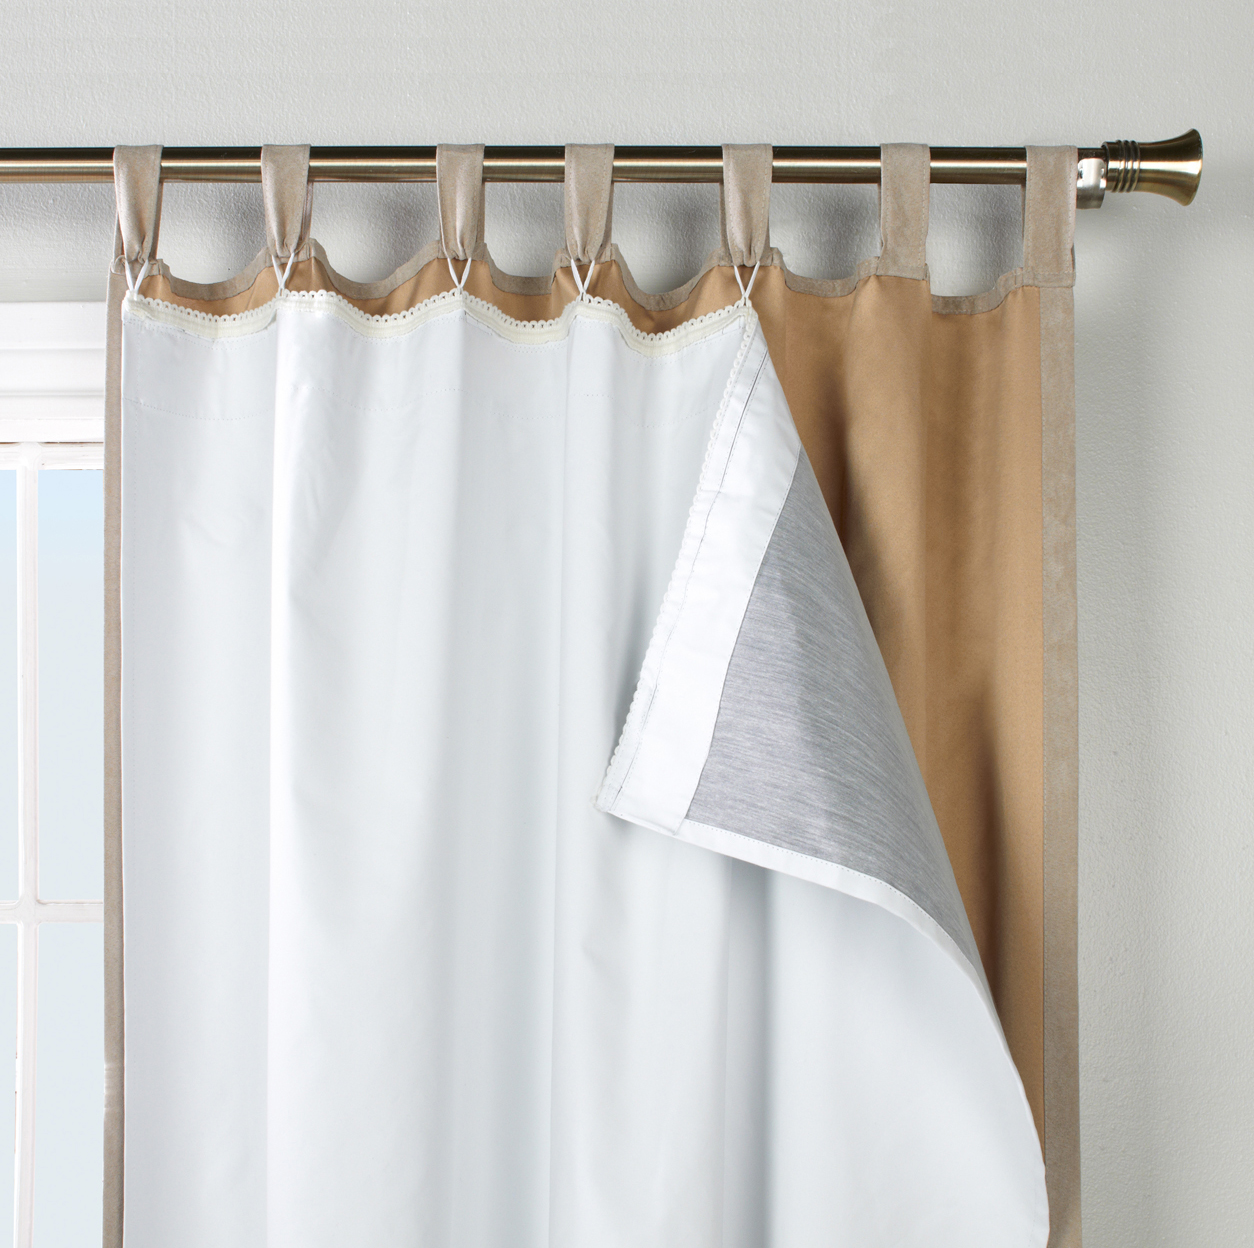 How To Hang Curtains With Drapery Hooks Thermal Jacket Liners